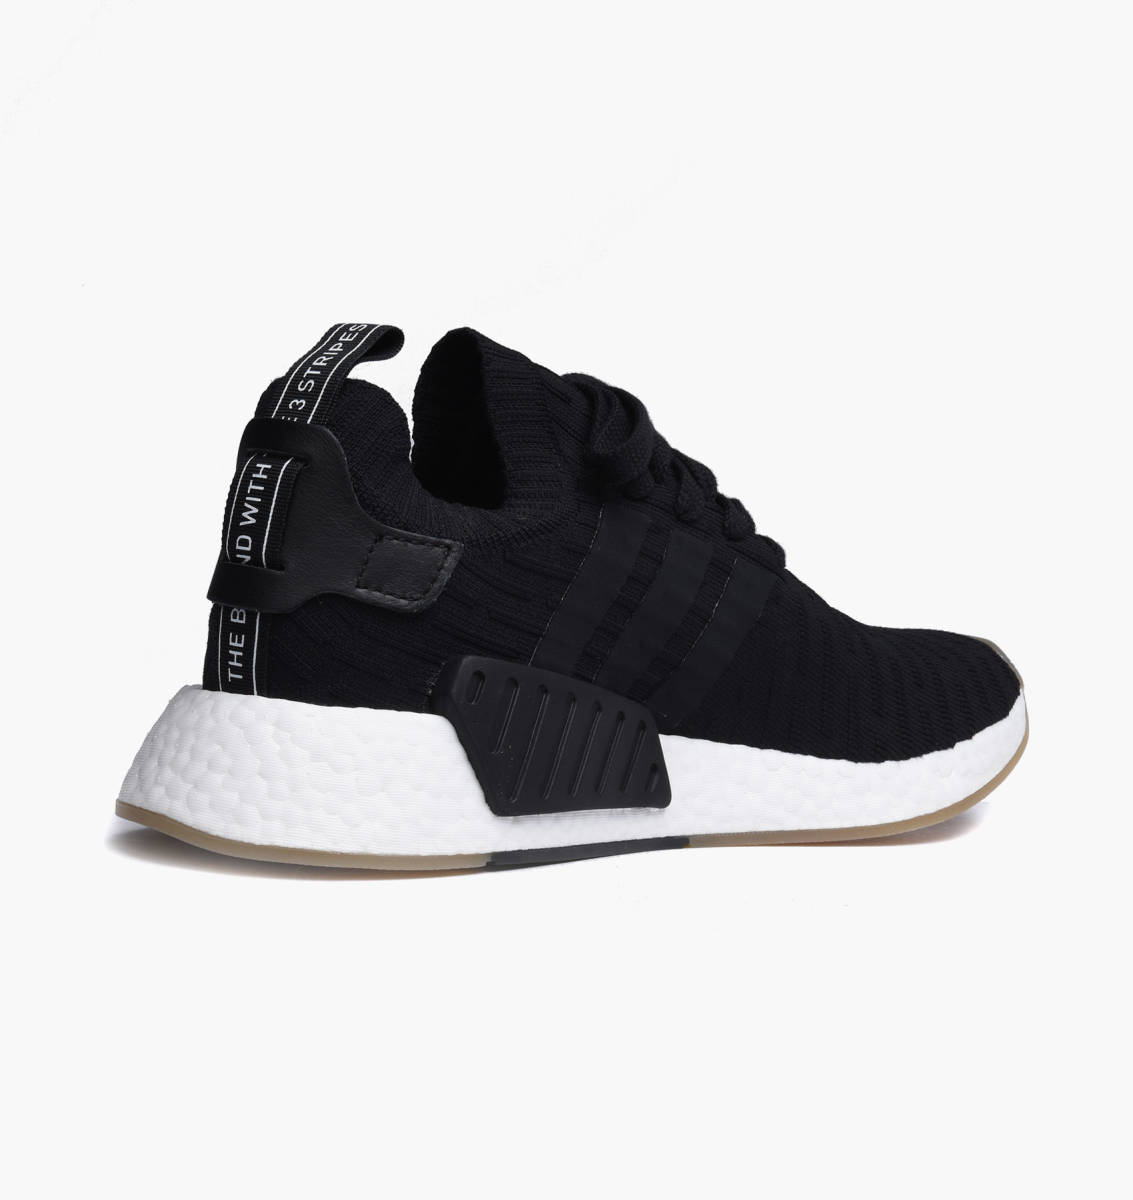 huge discount 61a0d a8cf8 adidas Originals NMD R2 PK in schwarz - BY9696 | everysize